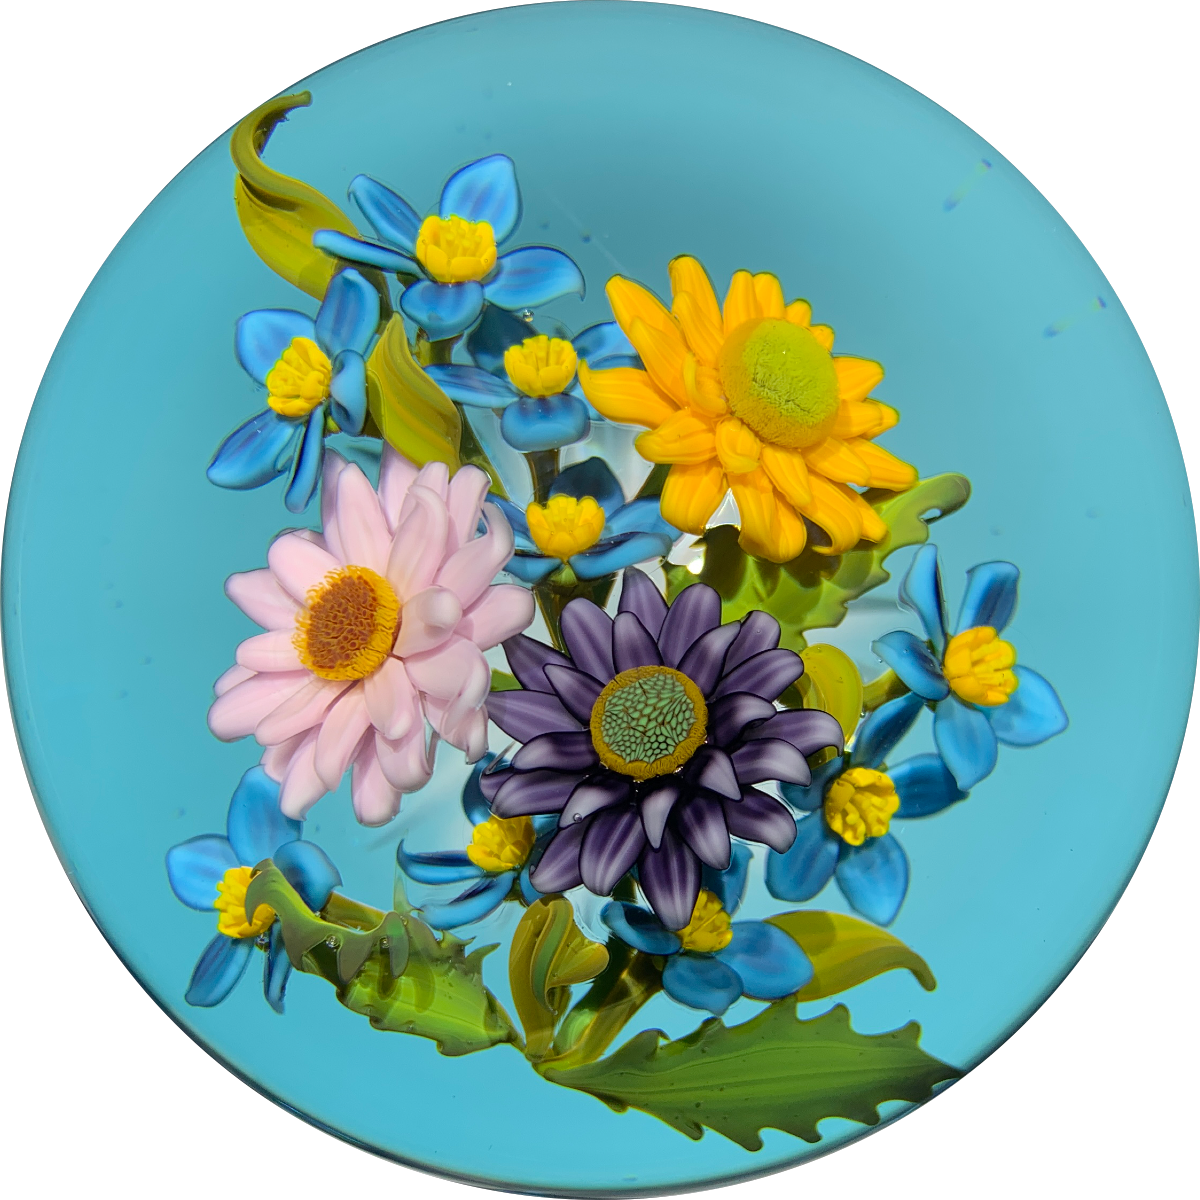 Gordon Smith 2020 Flamework Wild Flower Daisy Bouquet on Transparent Blue Star Cut Base